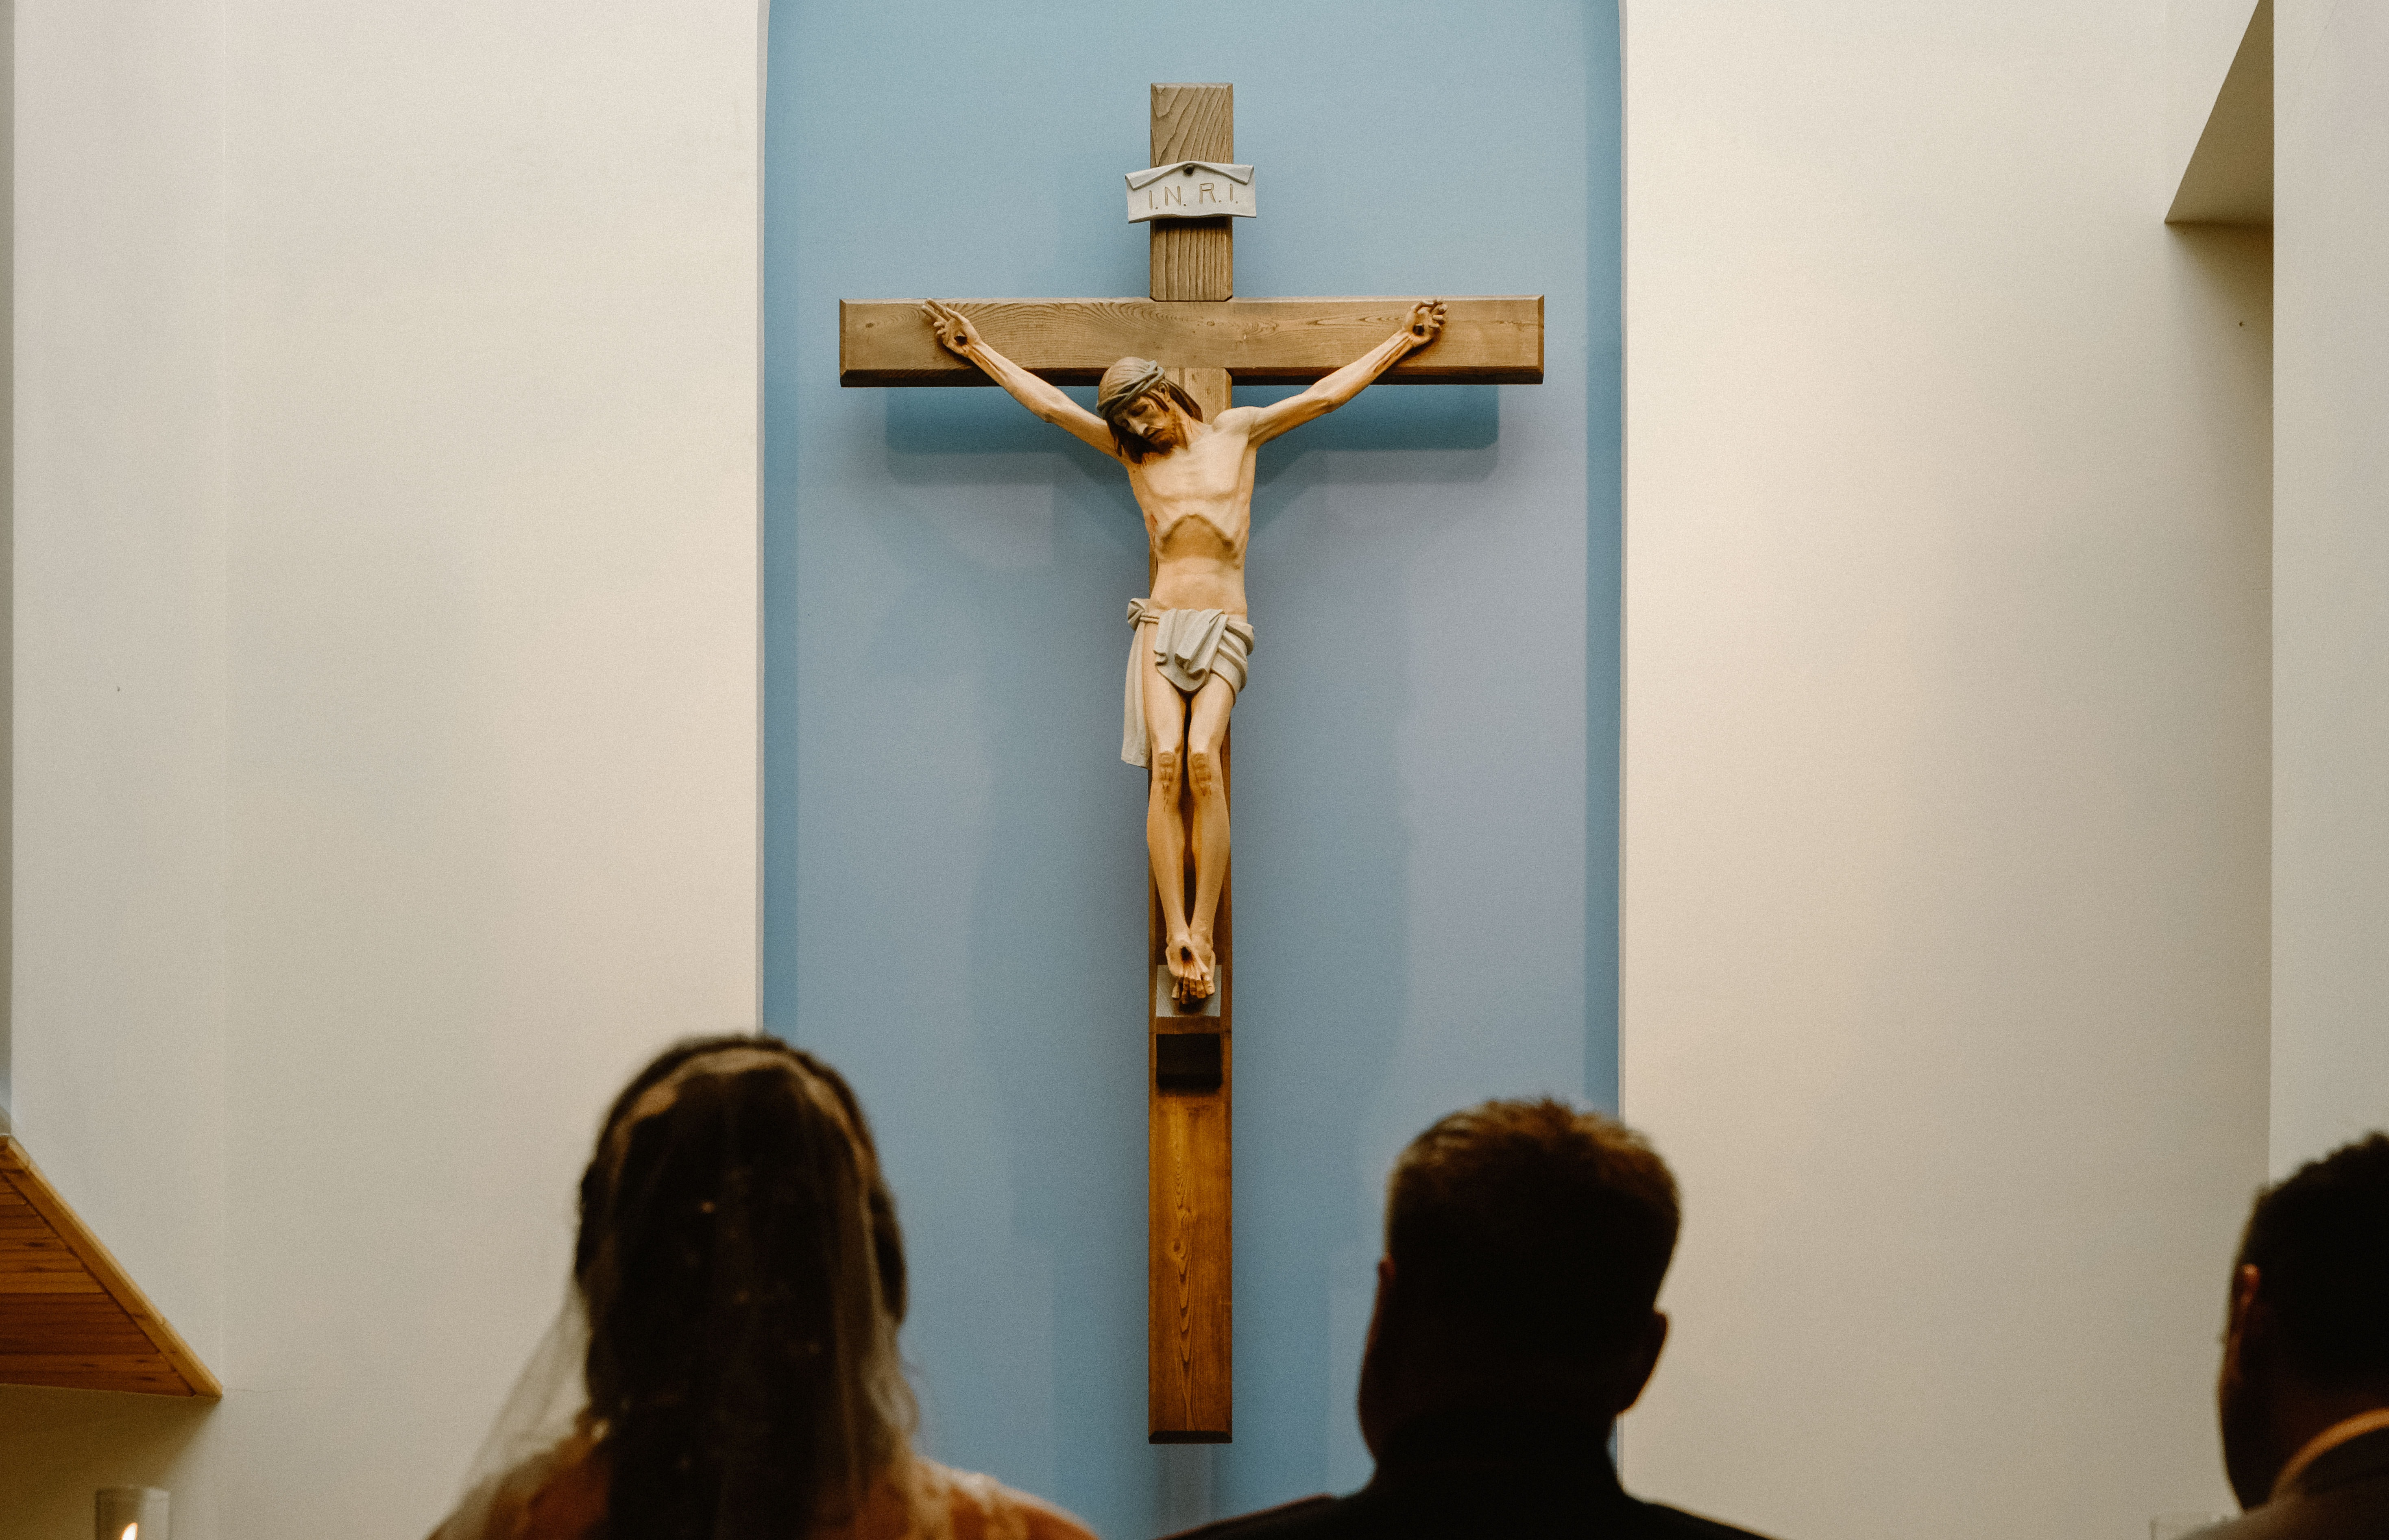 three people staring at the crucifix